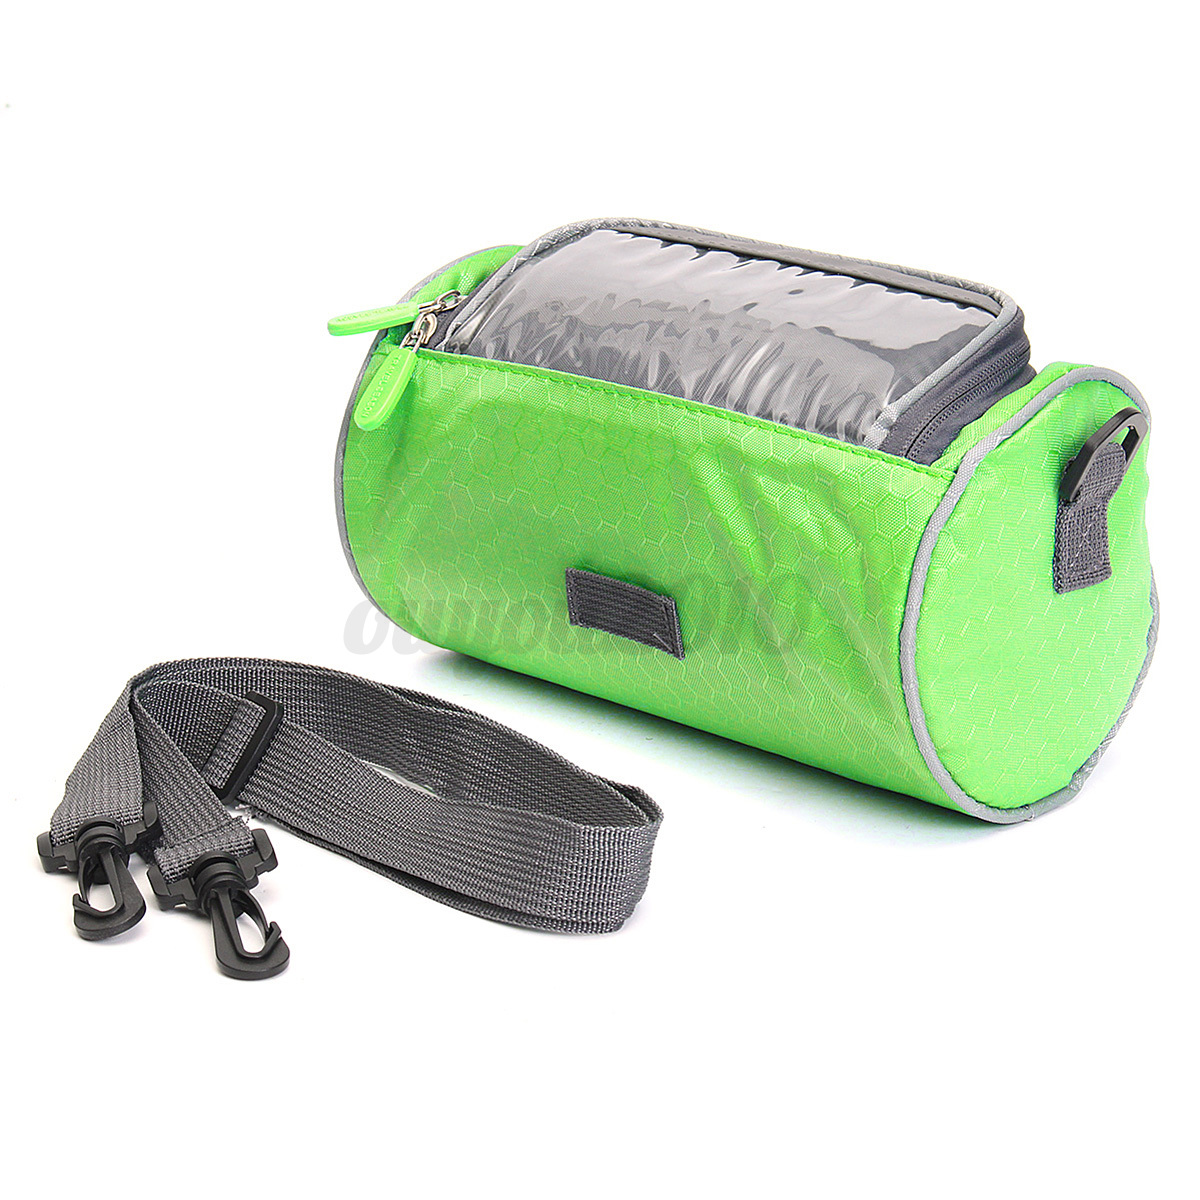 Bicycle Bike Bag Smart-phone Mobile Holder Waterproof Handlebar Frame Pannier